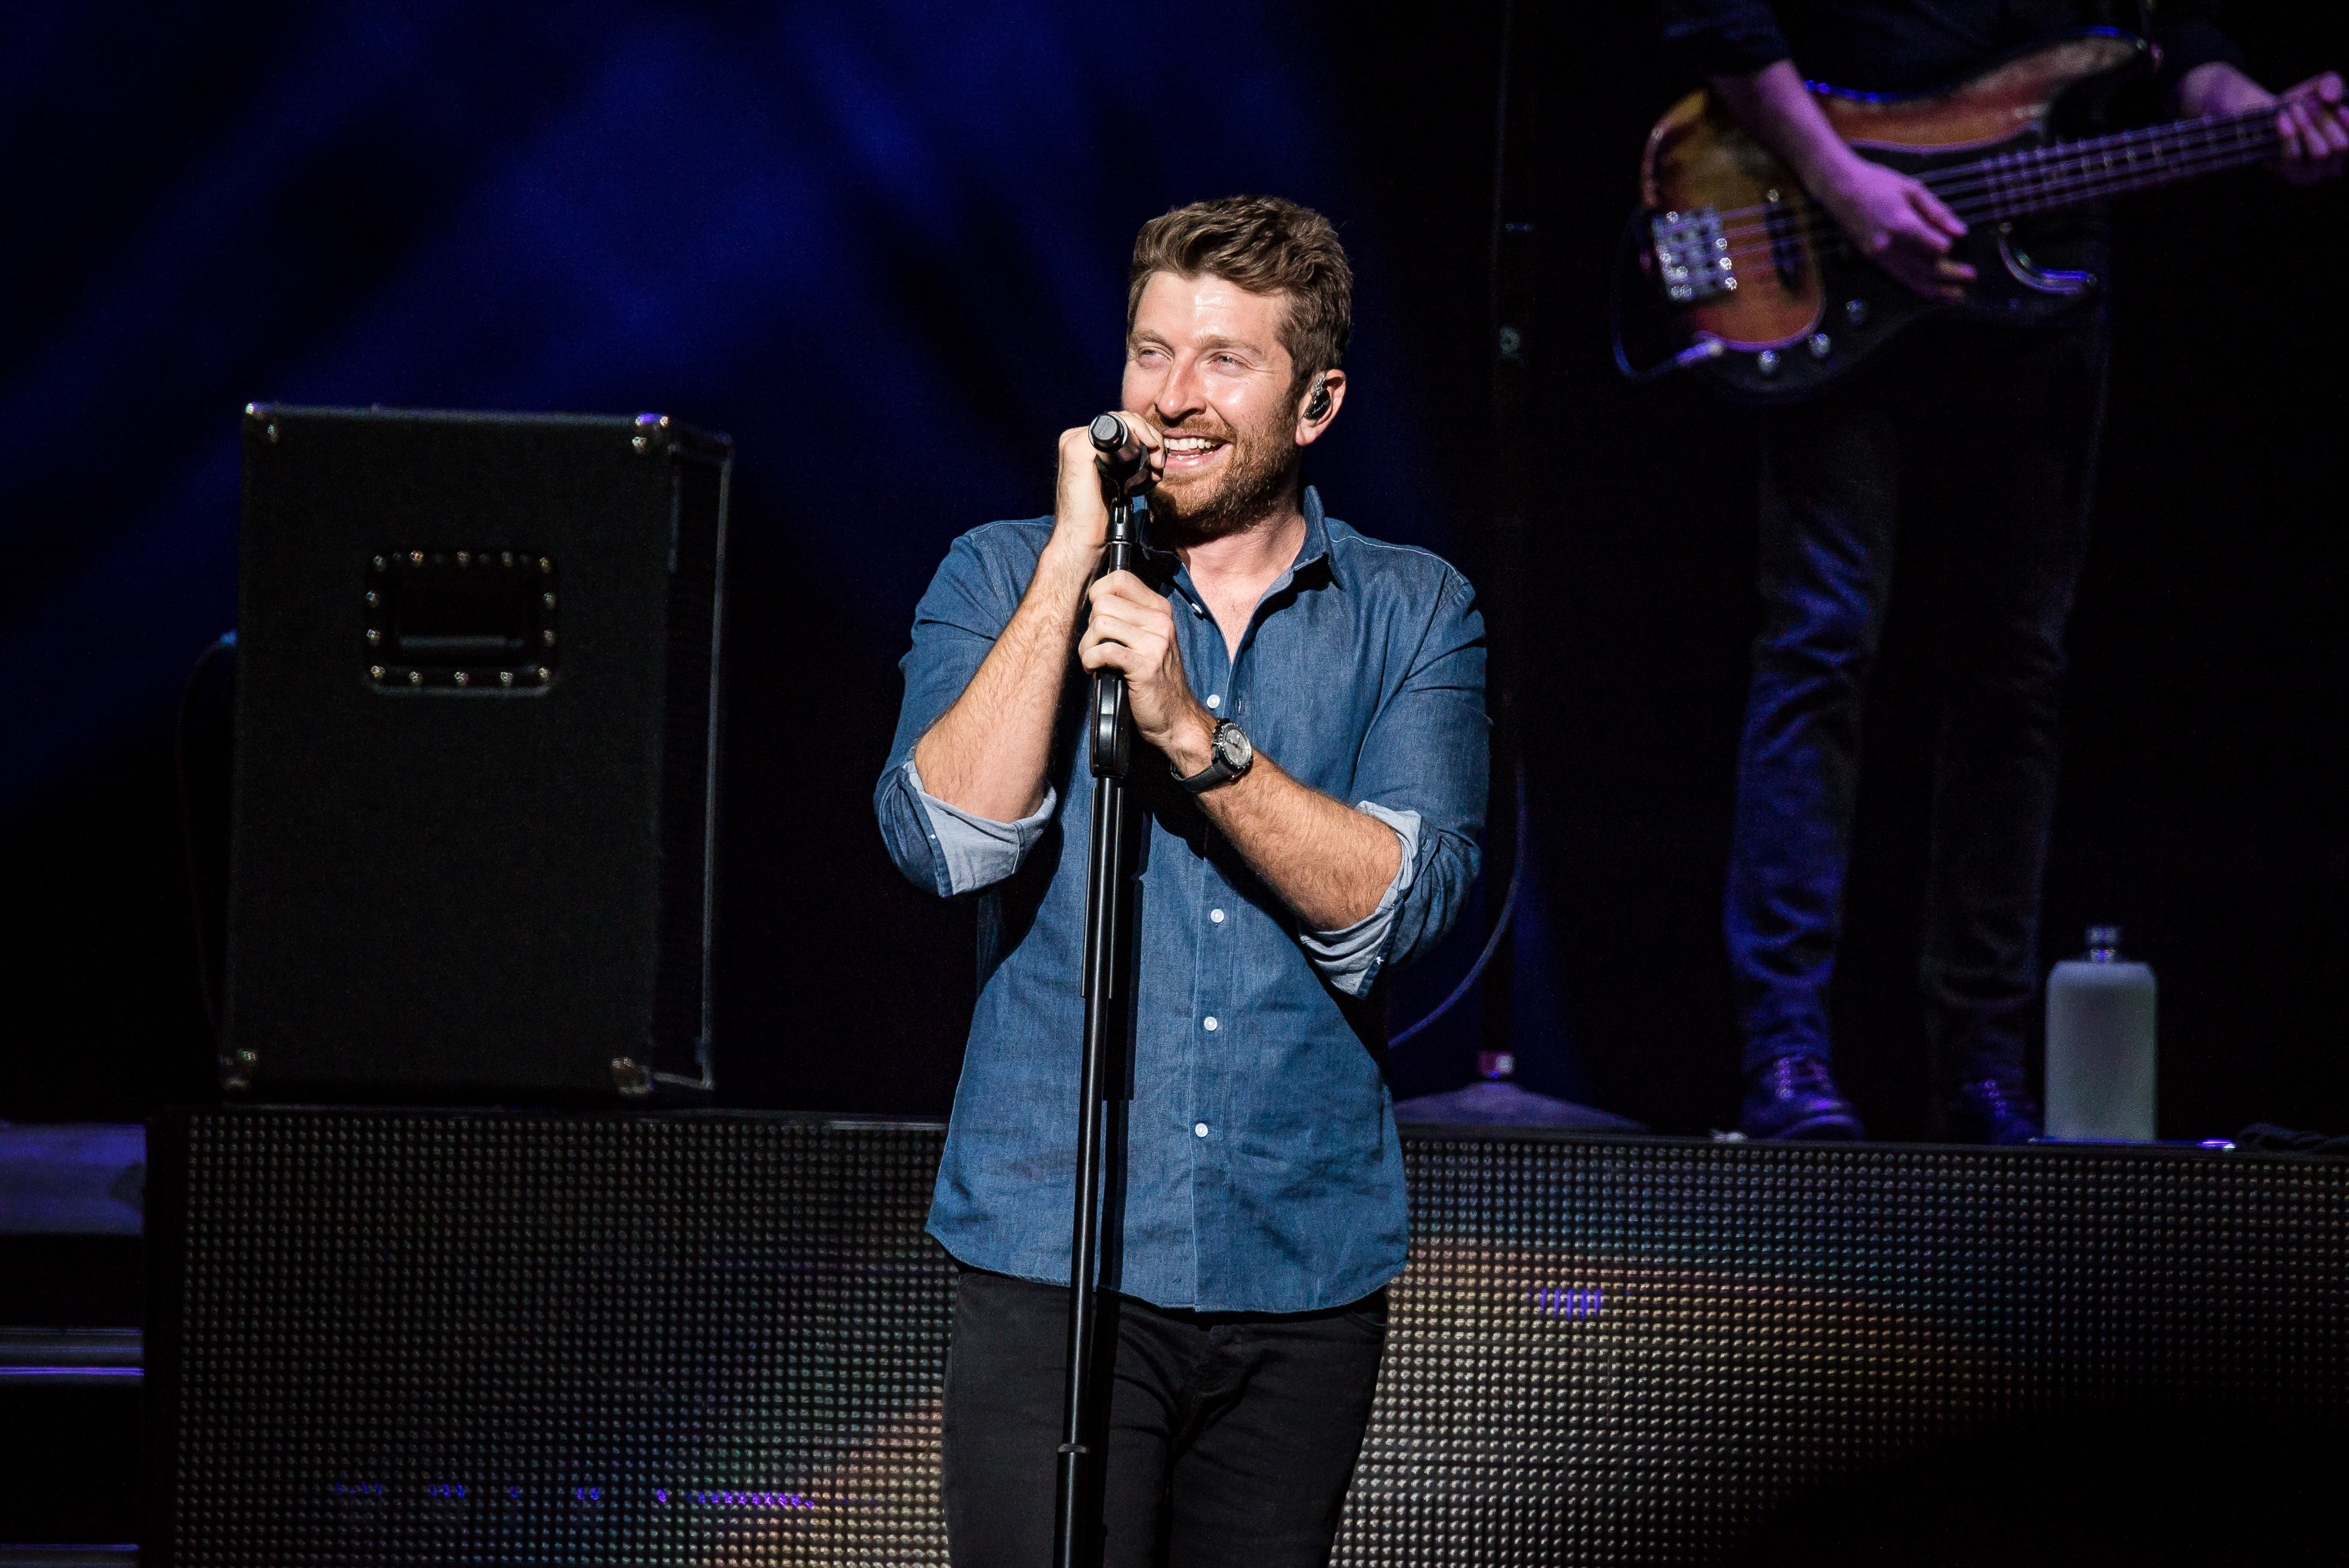 Brett Eldredge Opens up About His Battle with Anxiety